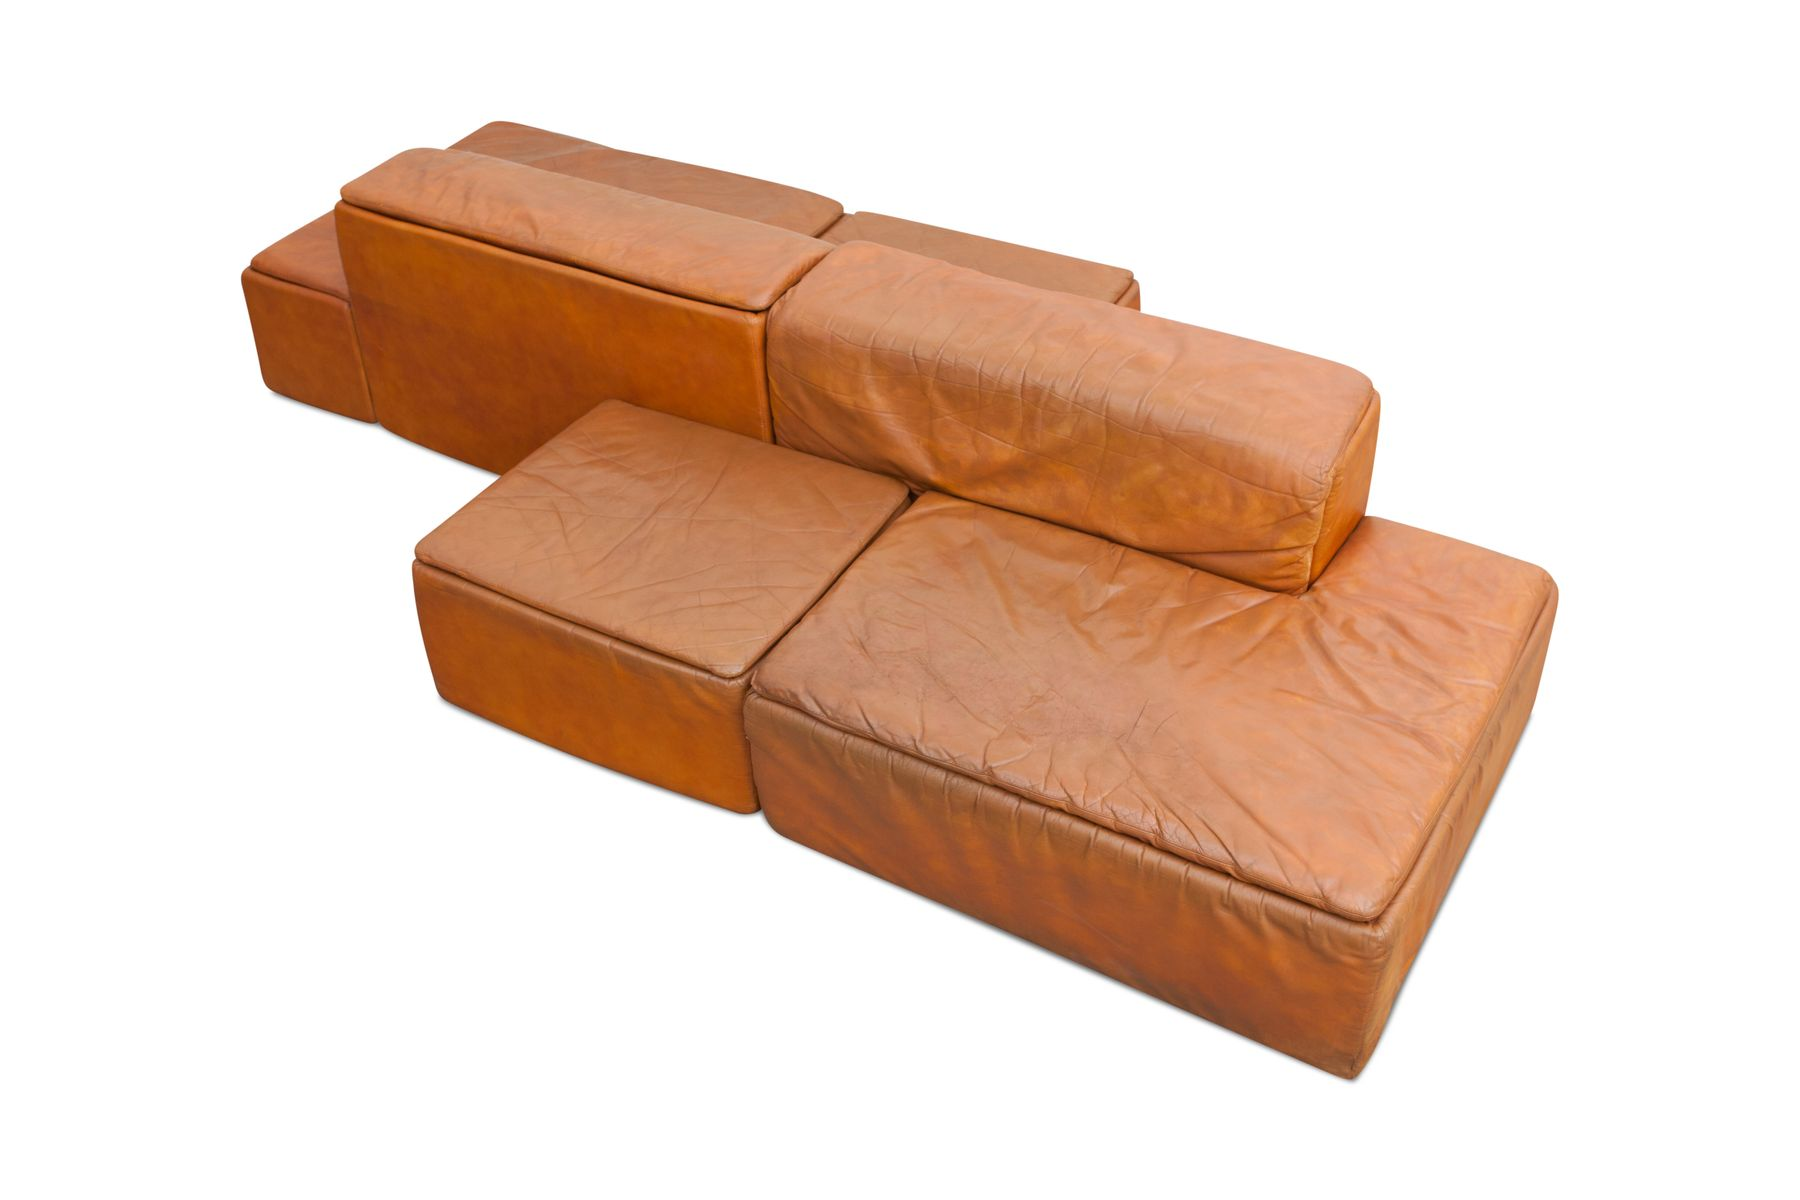 Paione Modular Leather Sofa By Claudio Salocchi For Sormani 1960s For Sale At Pamono